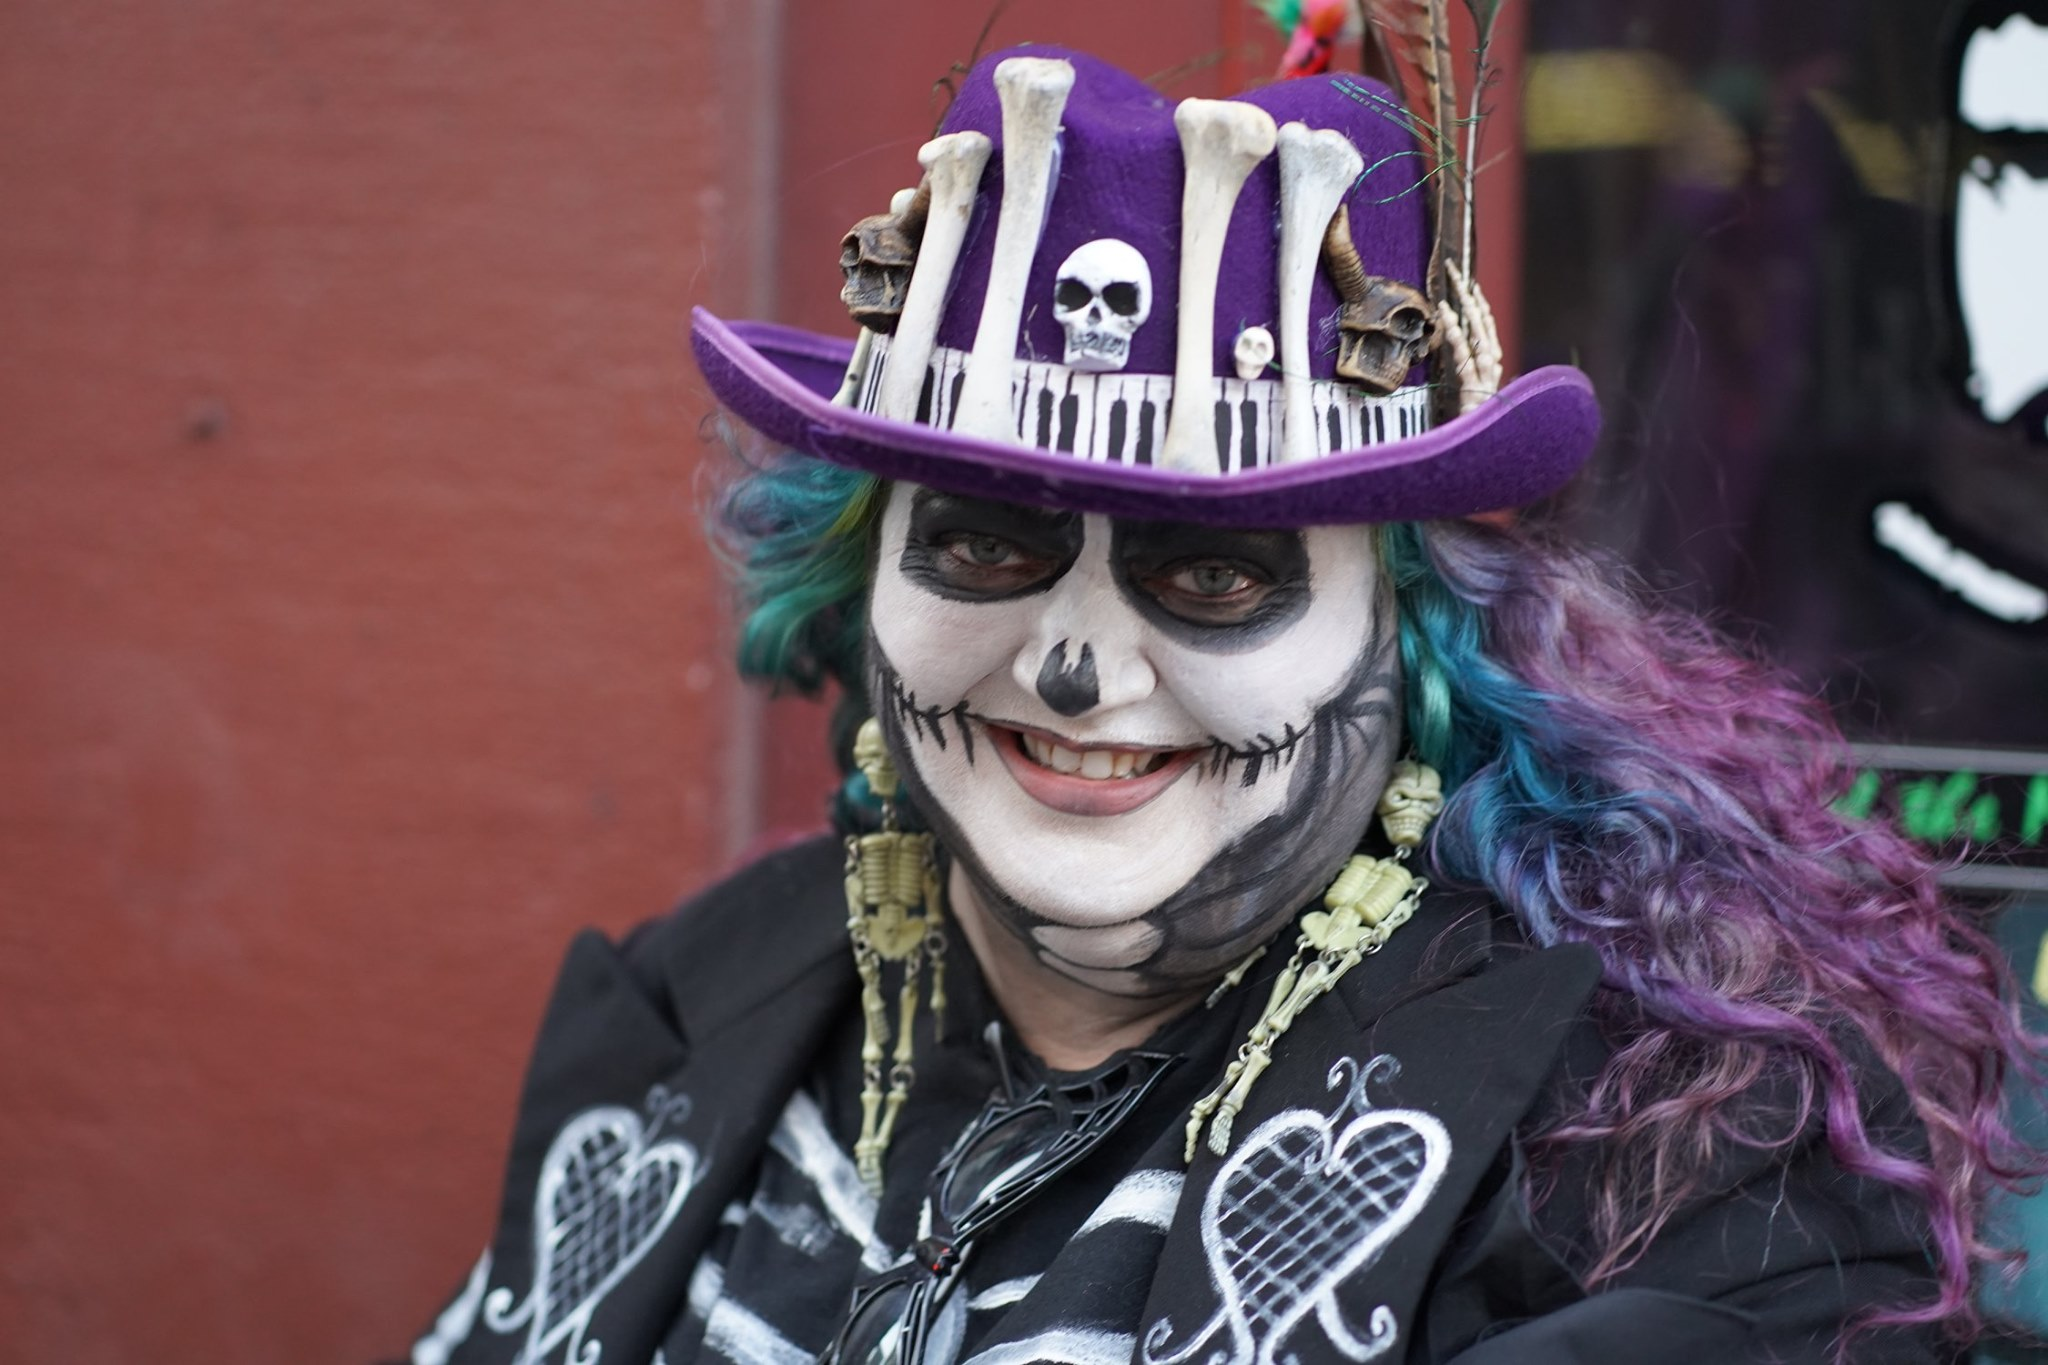 Photo's from Halloween 2019, New Orleans has a rich history of 300 years, some of the events that have happened include a lot of death, from murderer killers to vampires urban myths.